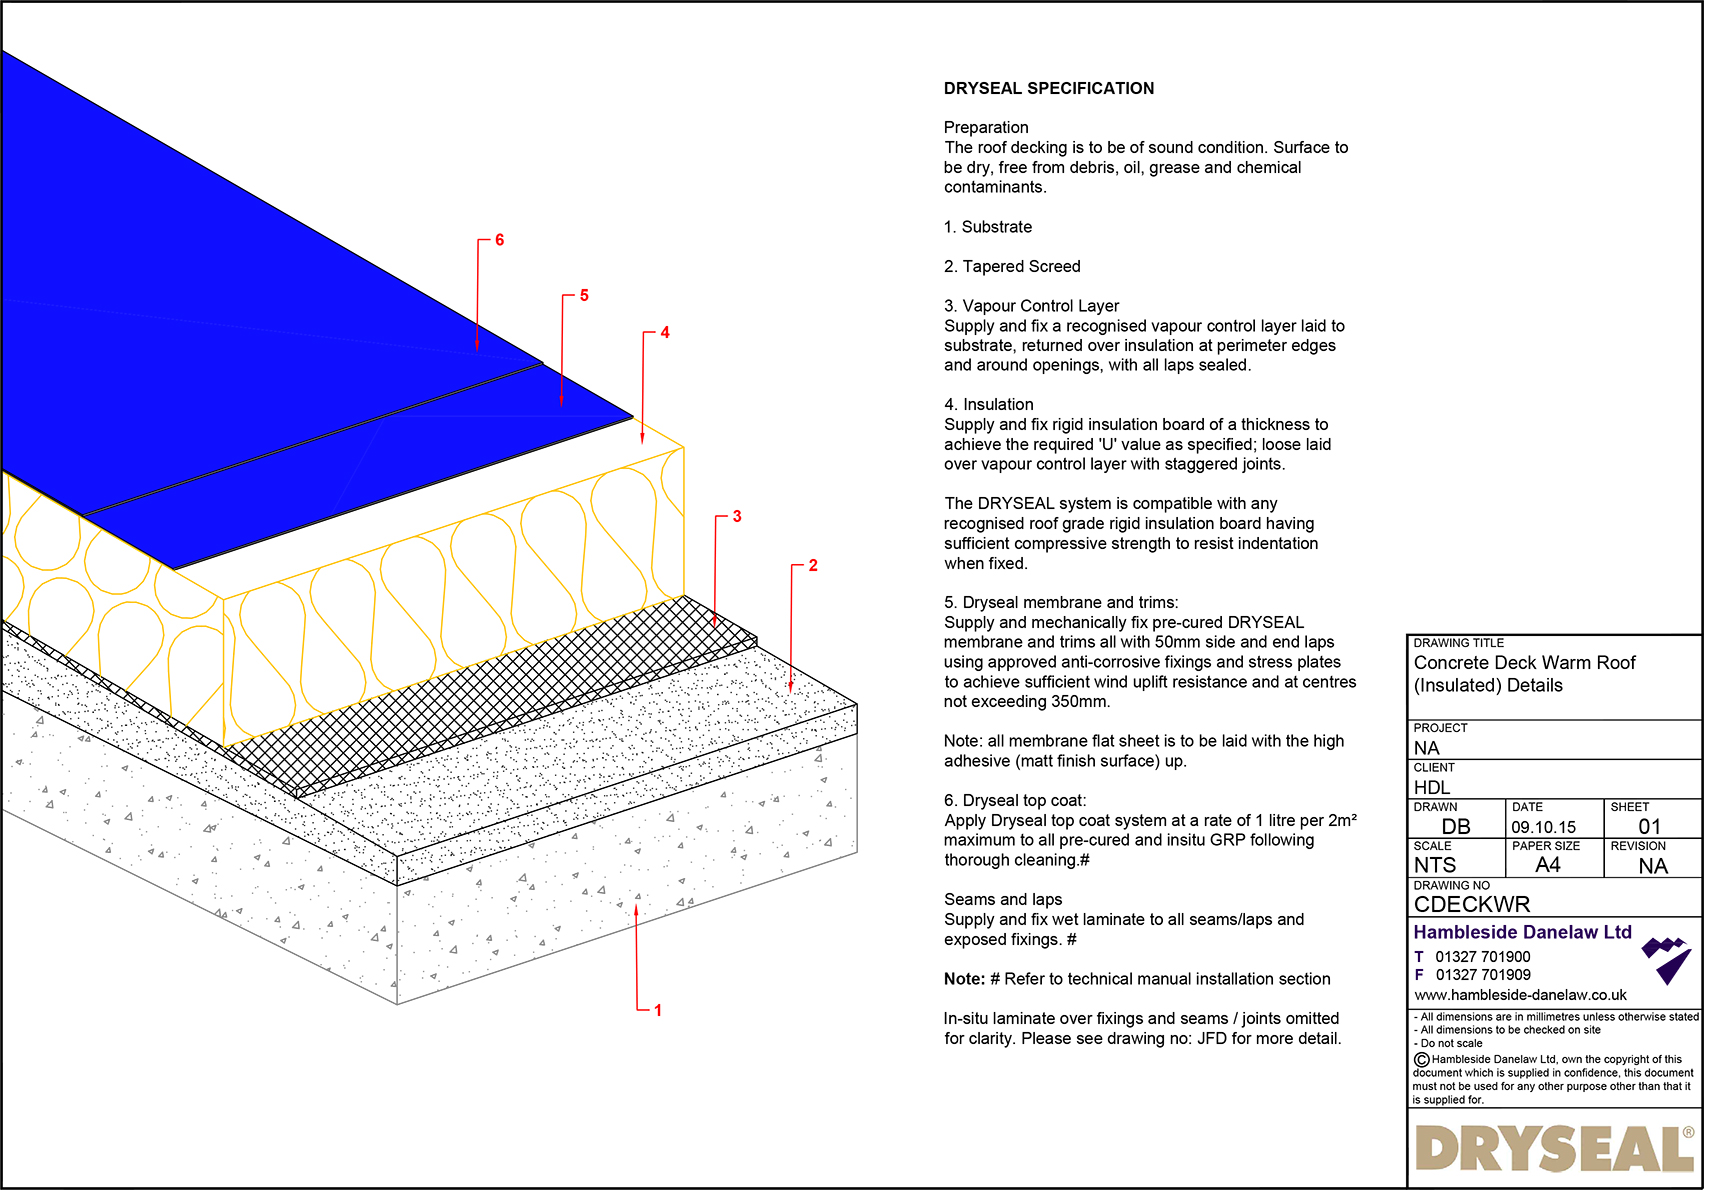 Concrete Deck Warm Roof Dryseal Roofing